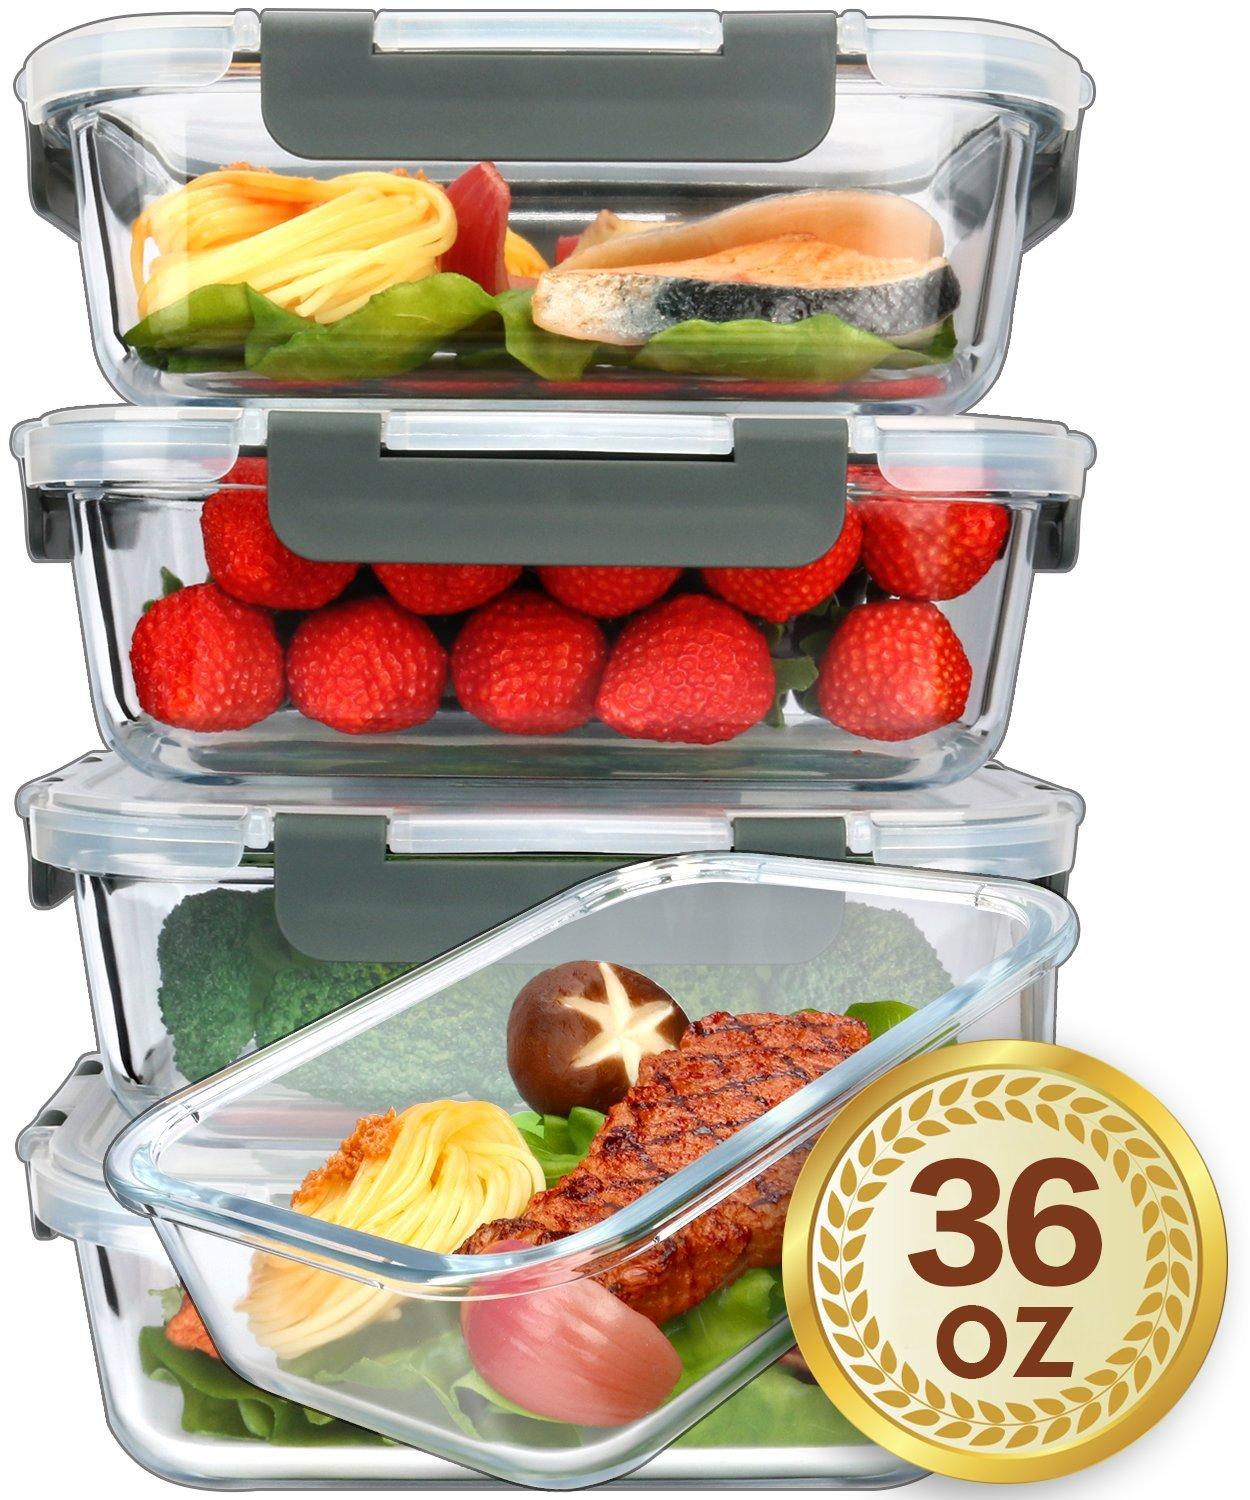 [5-Packs, 36 Oz.] Glass Meal Prep Containers with Lifetime Lasting Snap Locking Lids Glass Food Containers,Airtight Lunch Container,Microwave, Oven, Freezer and Dishwasher Safe(4.5 Cup) glass-container005